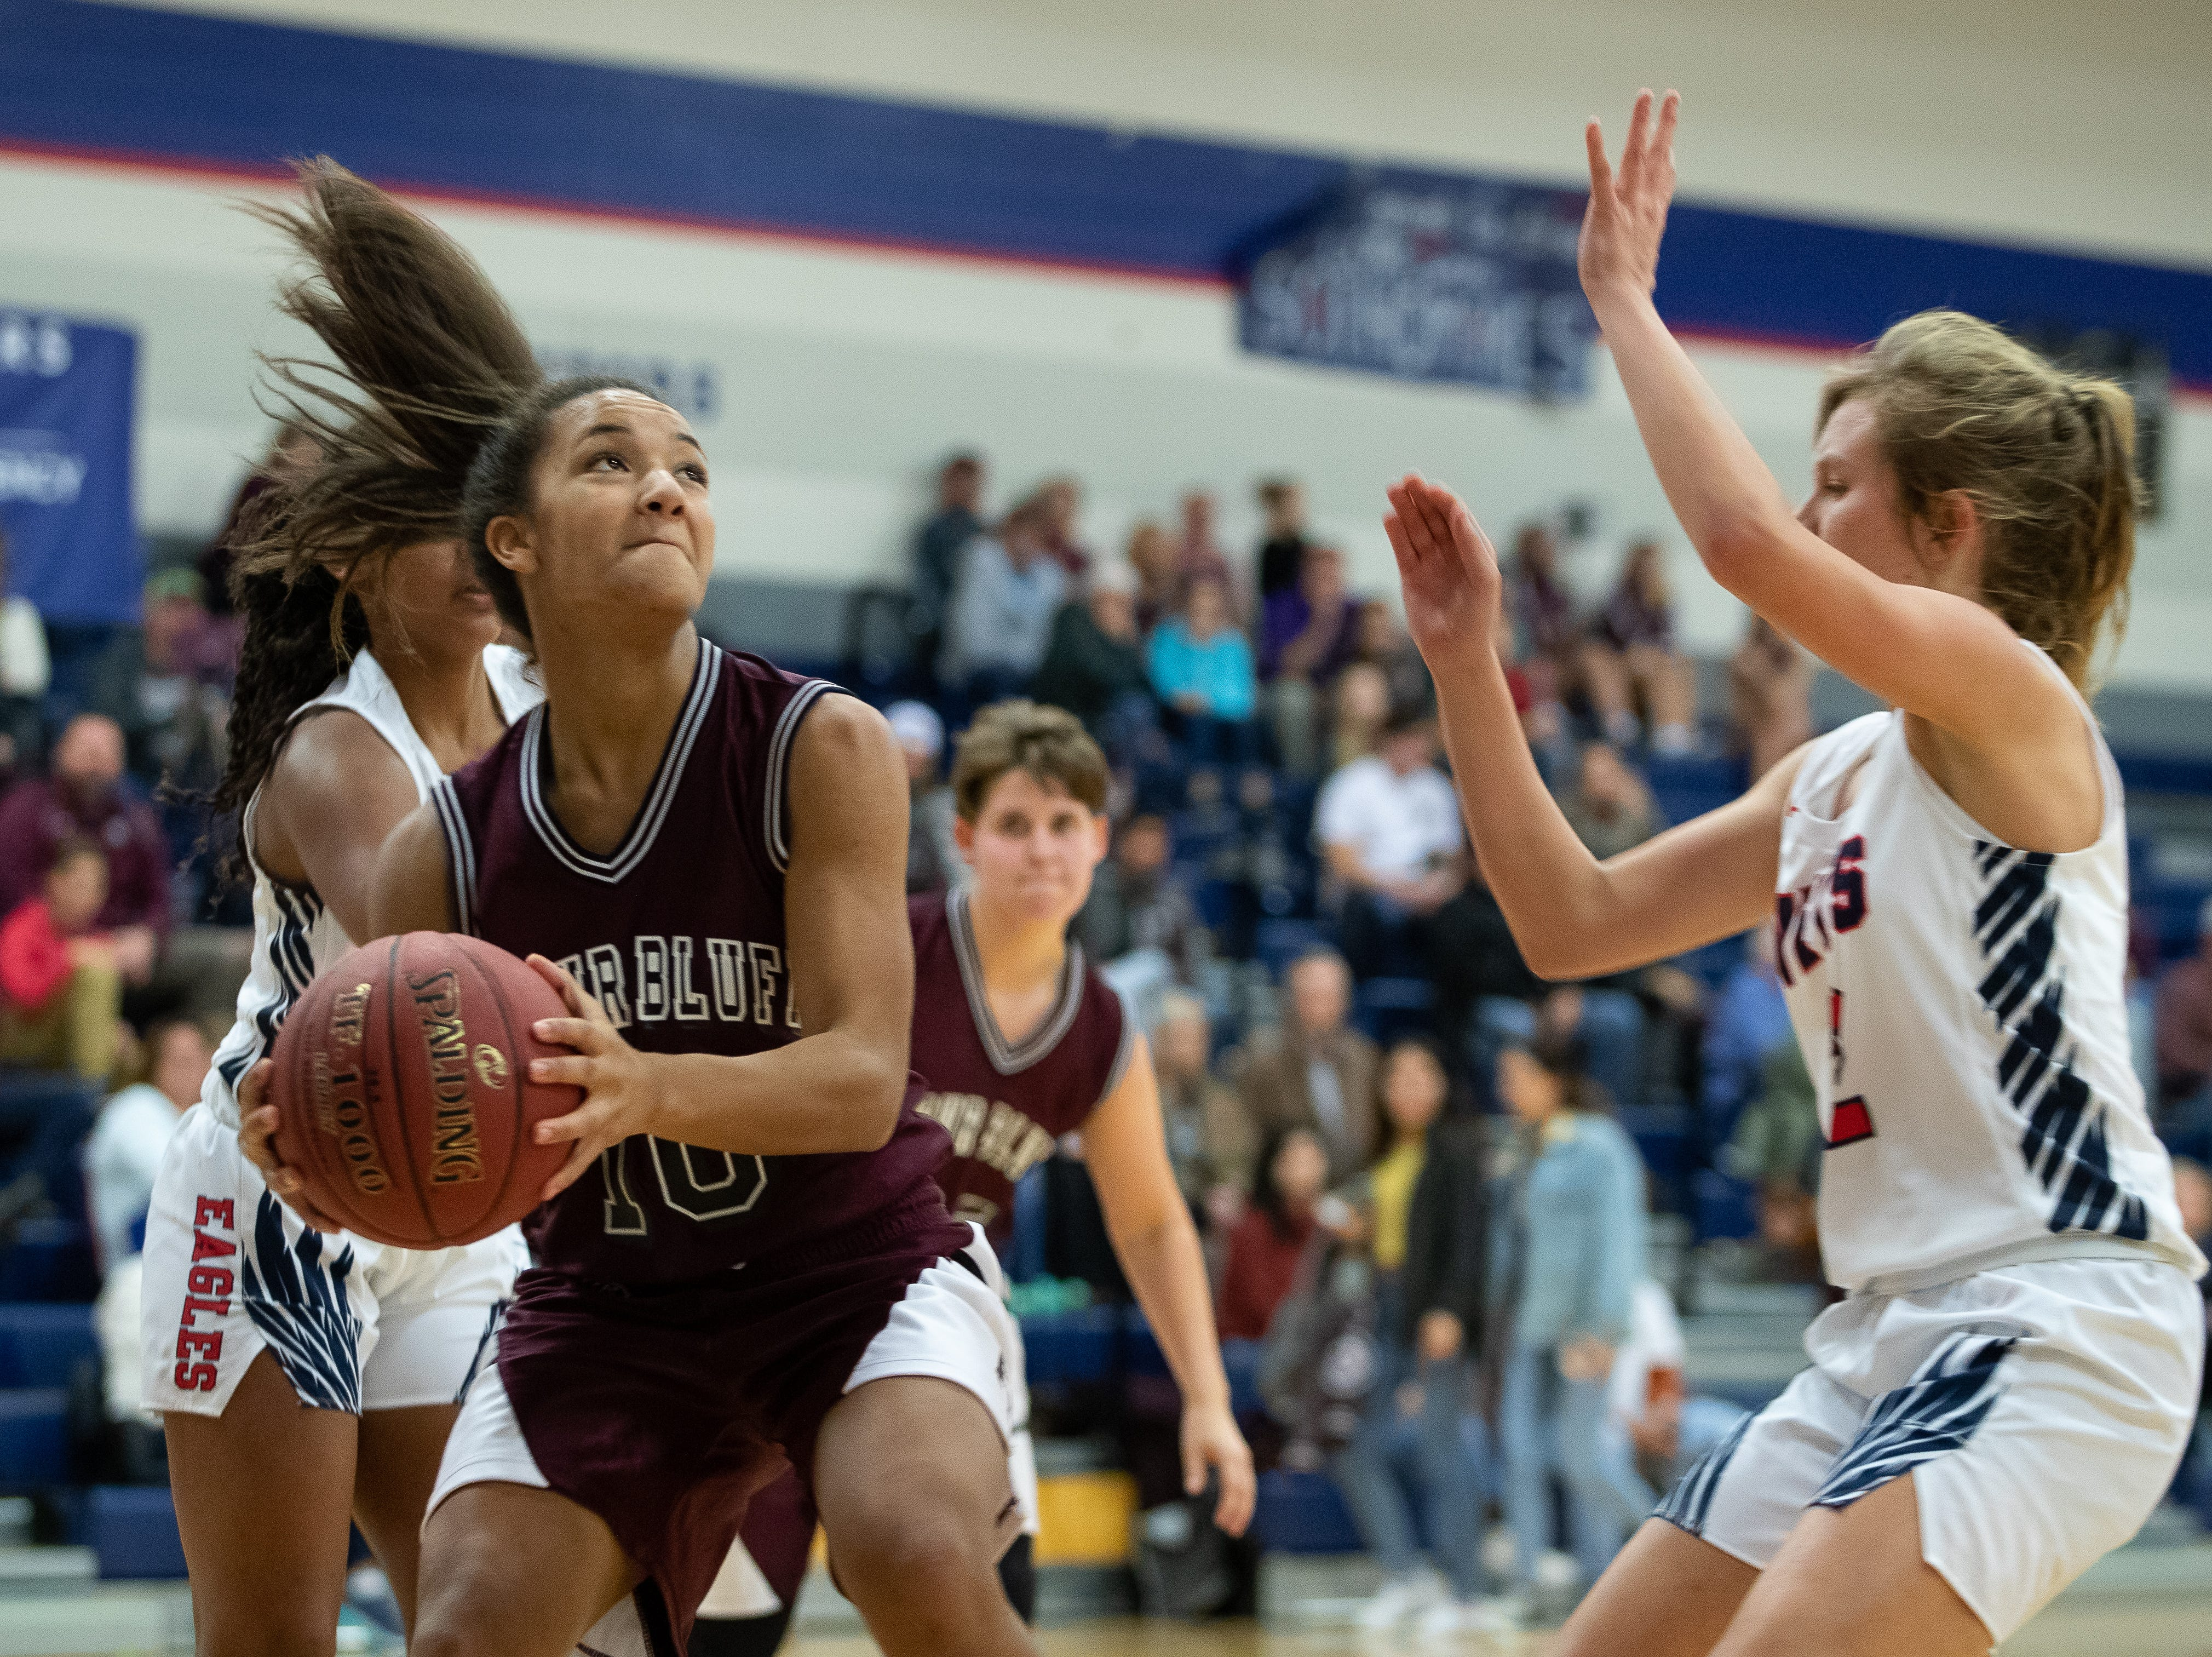 Flour Bluff girls open district with win, Veterans Memorial girls move to 3-0